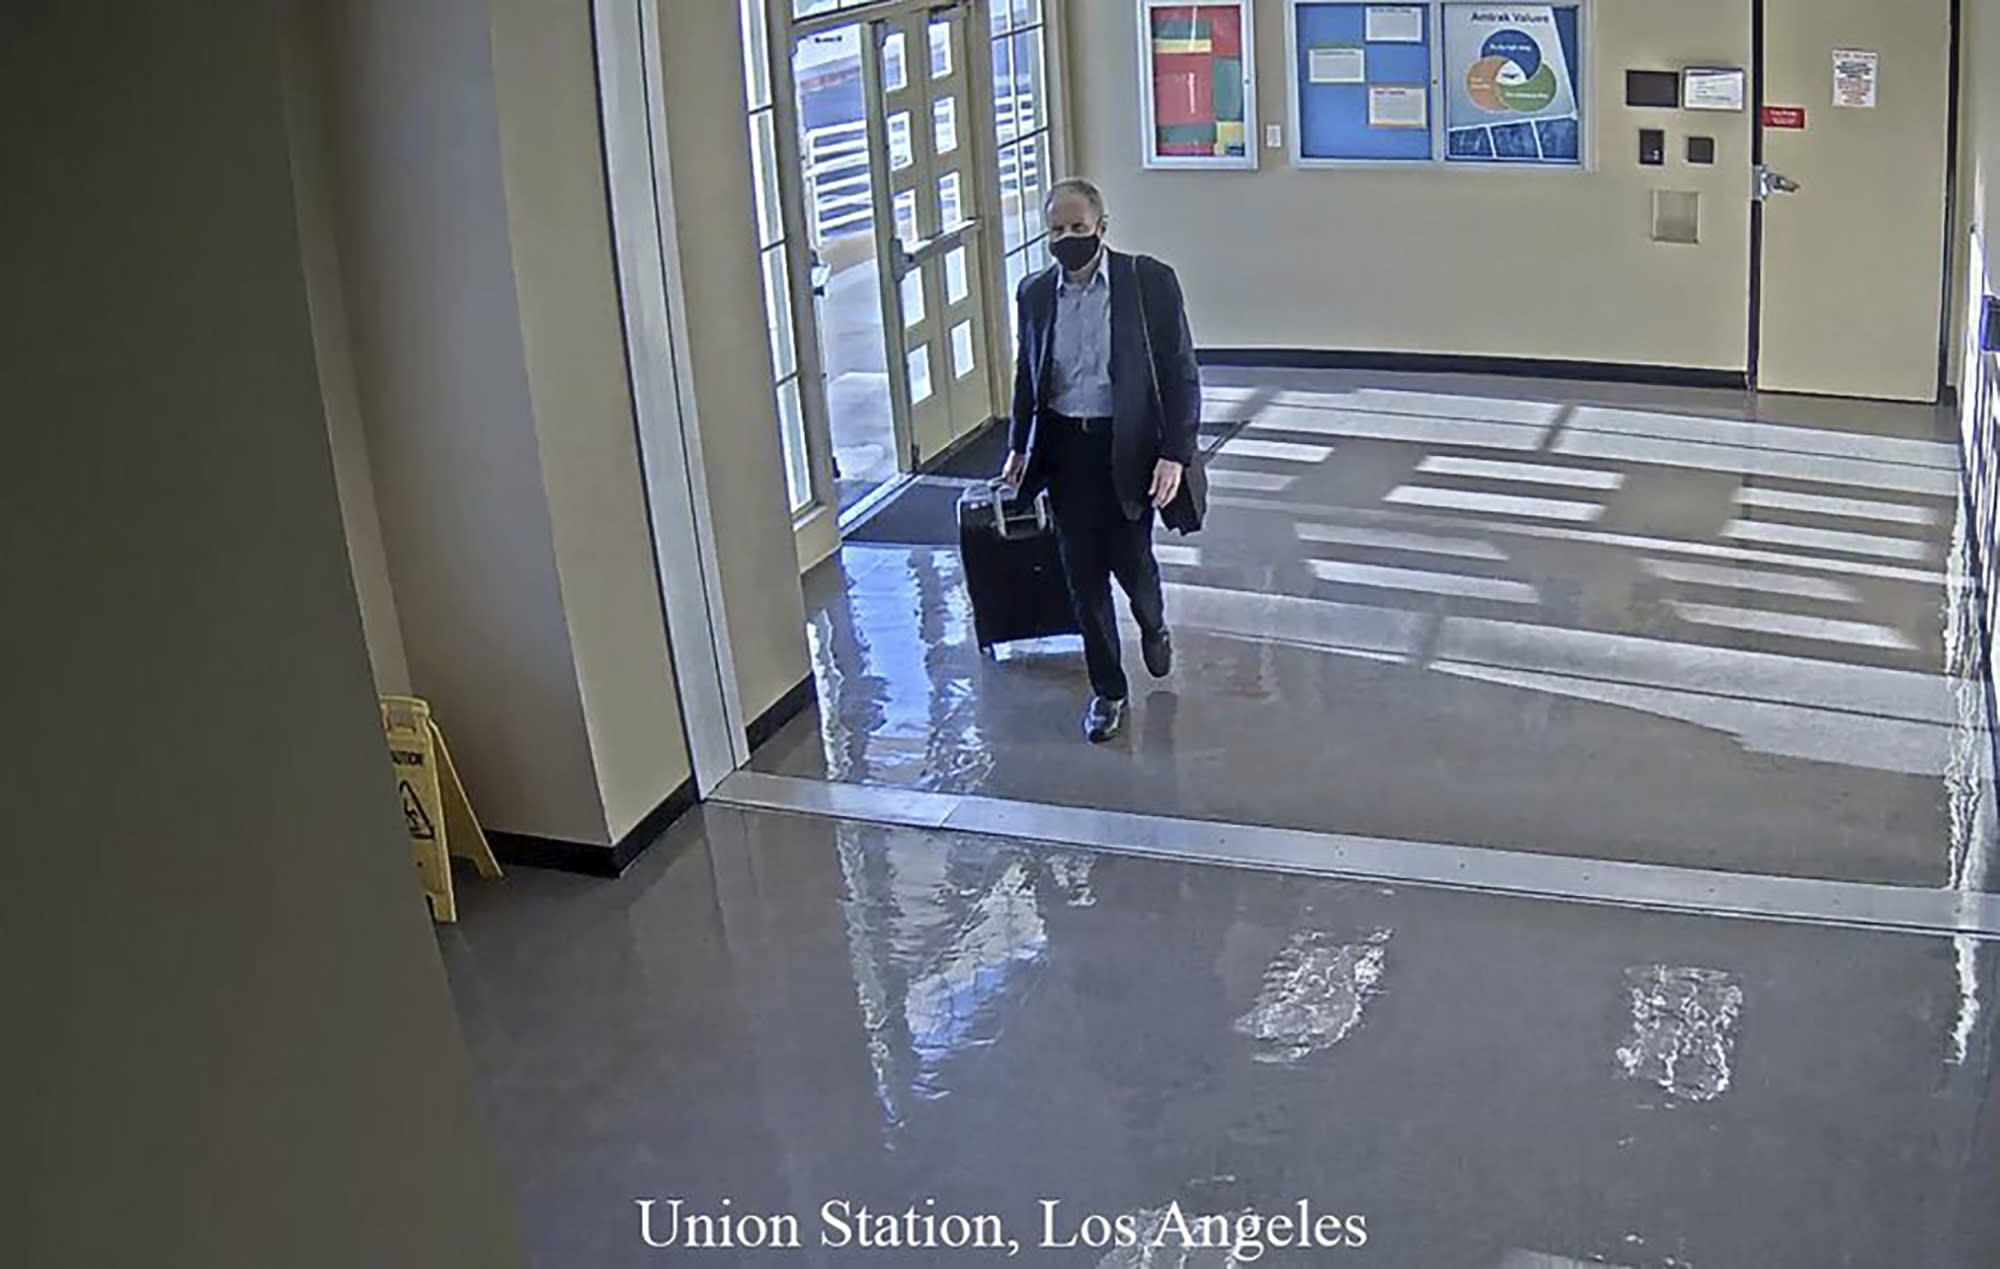 This July 11, 2020 surveillance photo provided by the San Bernardino County Sheriff's Department shows who is believed to be Roy Den Hollander, passing through Union Station in Los Angeles. Officials announced Friday, July 24, 2020, that Hollander fatally shot Marc Angelucci on July 11, 2020, in California. He then on July 19, 2020, shot and killed U.S. District Judge Esther Salas' son and wounded her husband in New Jersey, and was found dead the next day. (Courtesy of San Bernardino County Sheriff's Department via AP)